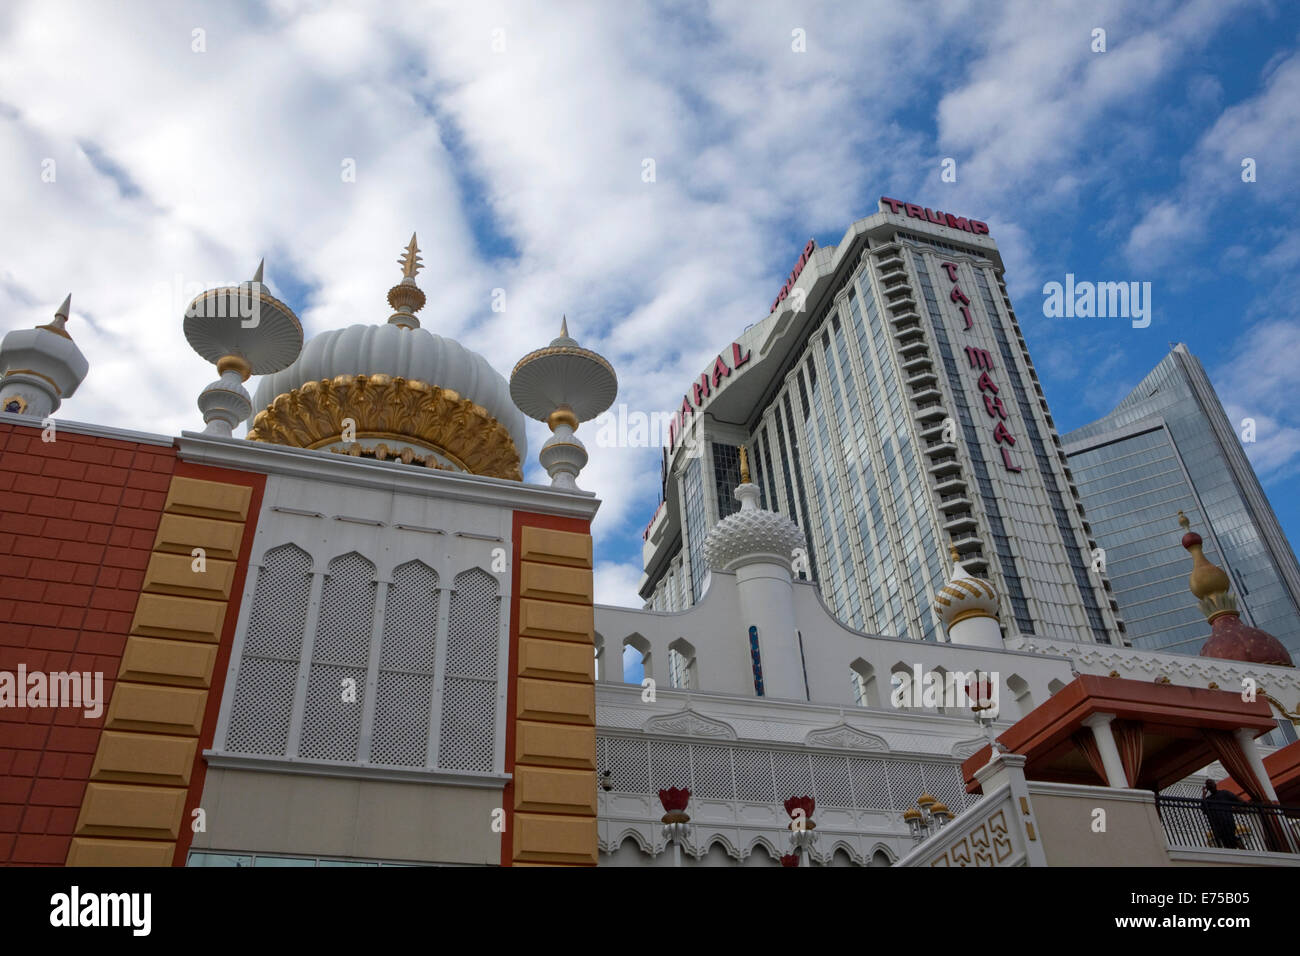 A view of the Trump Taj Mahal casino and hotel in Atlantic City, New Jersey - Stock Image